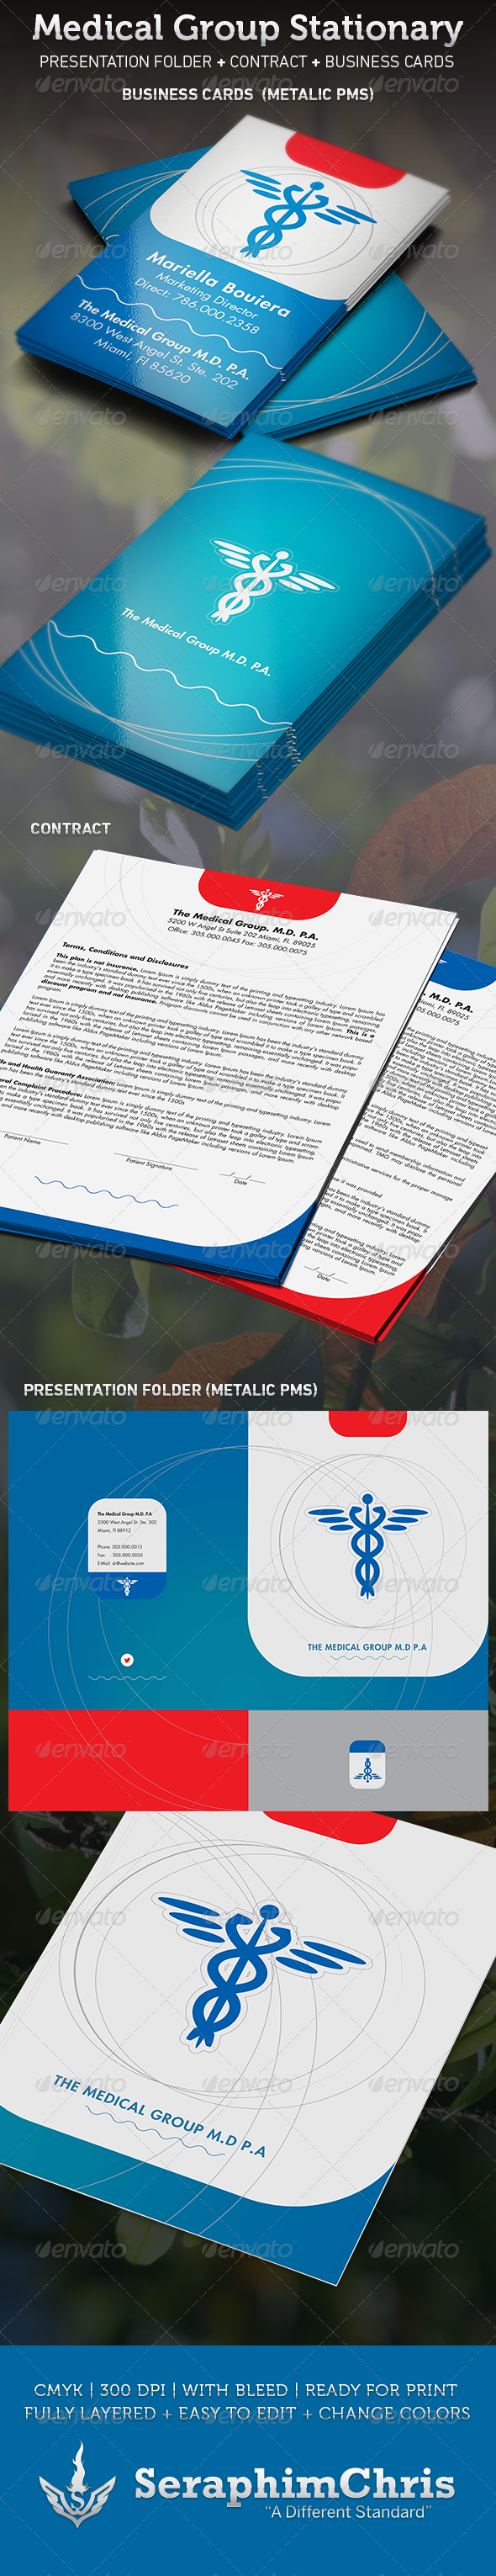 Medical Group Stationary Template - Stationery Print Templates